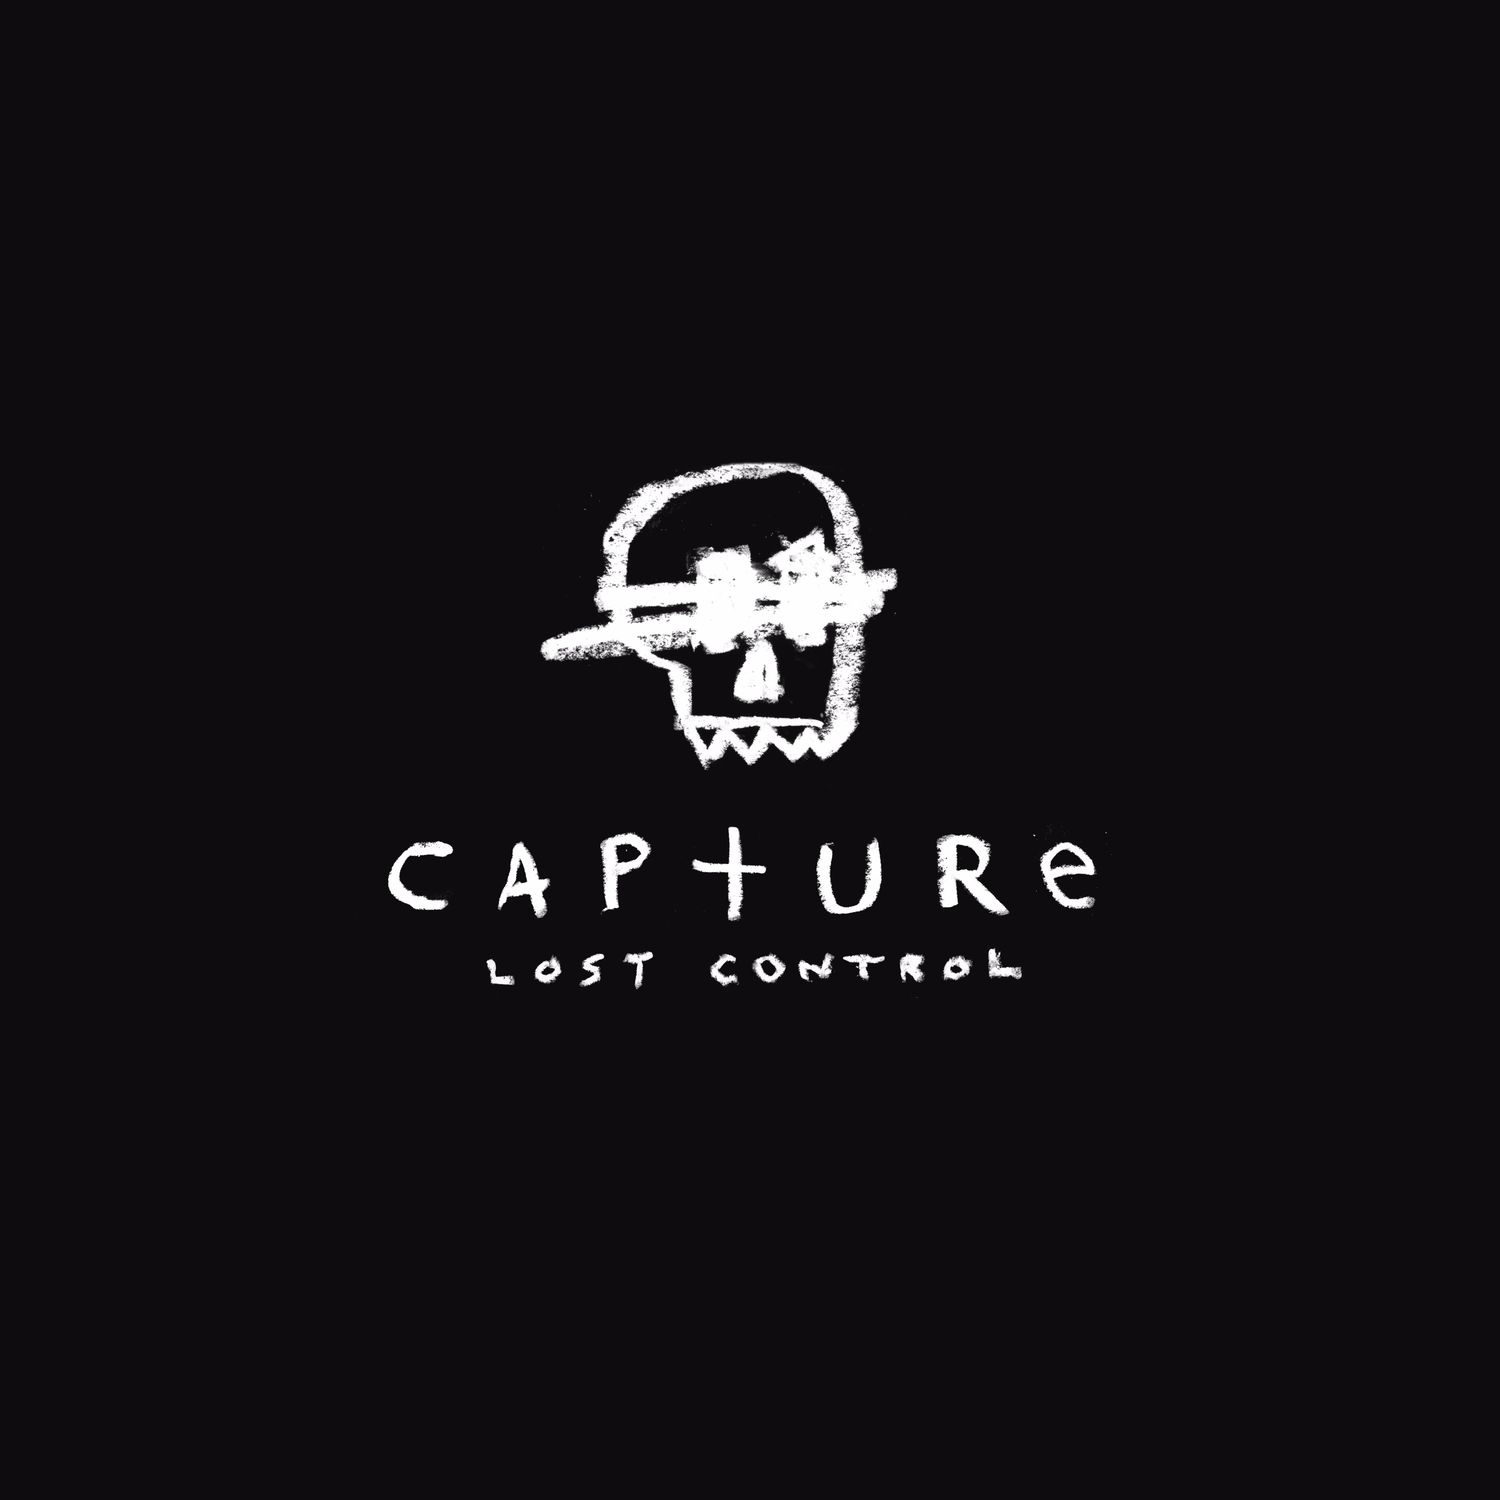 Capture - Lost Control [single] (2017)